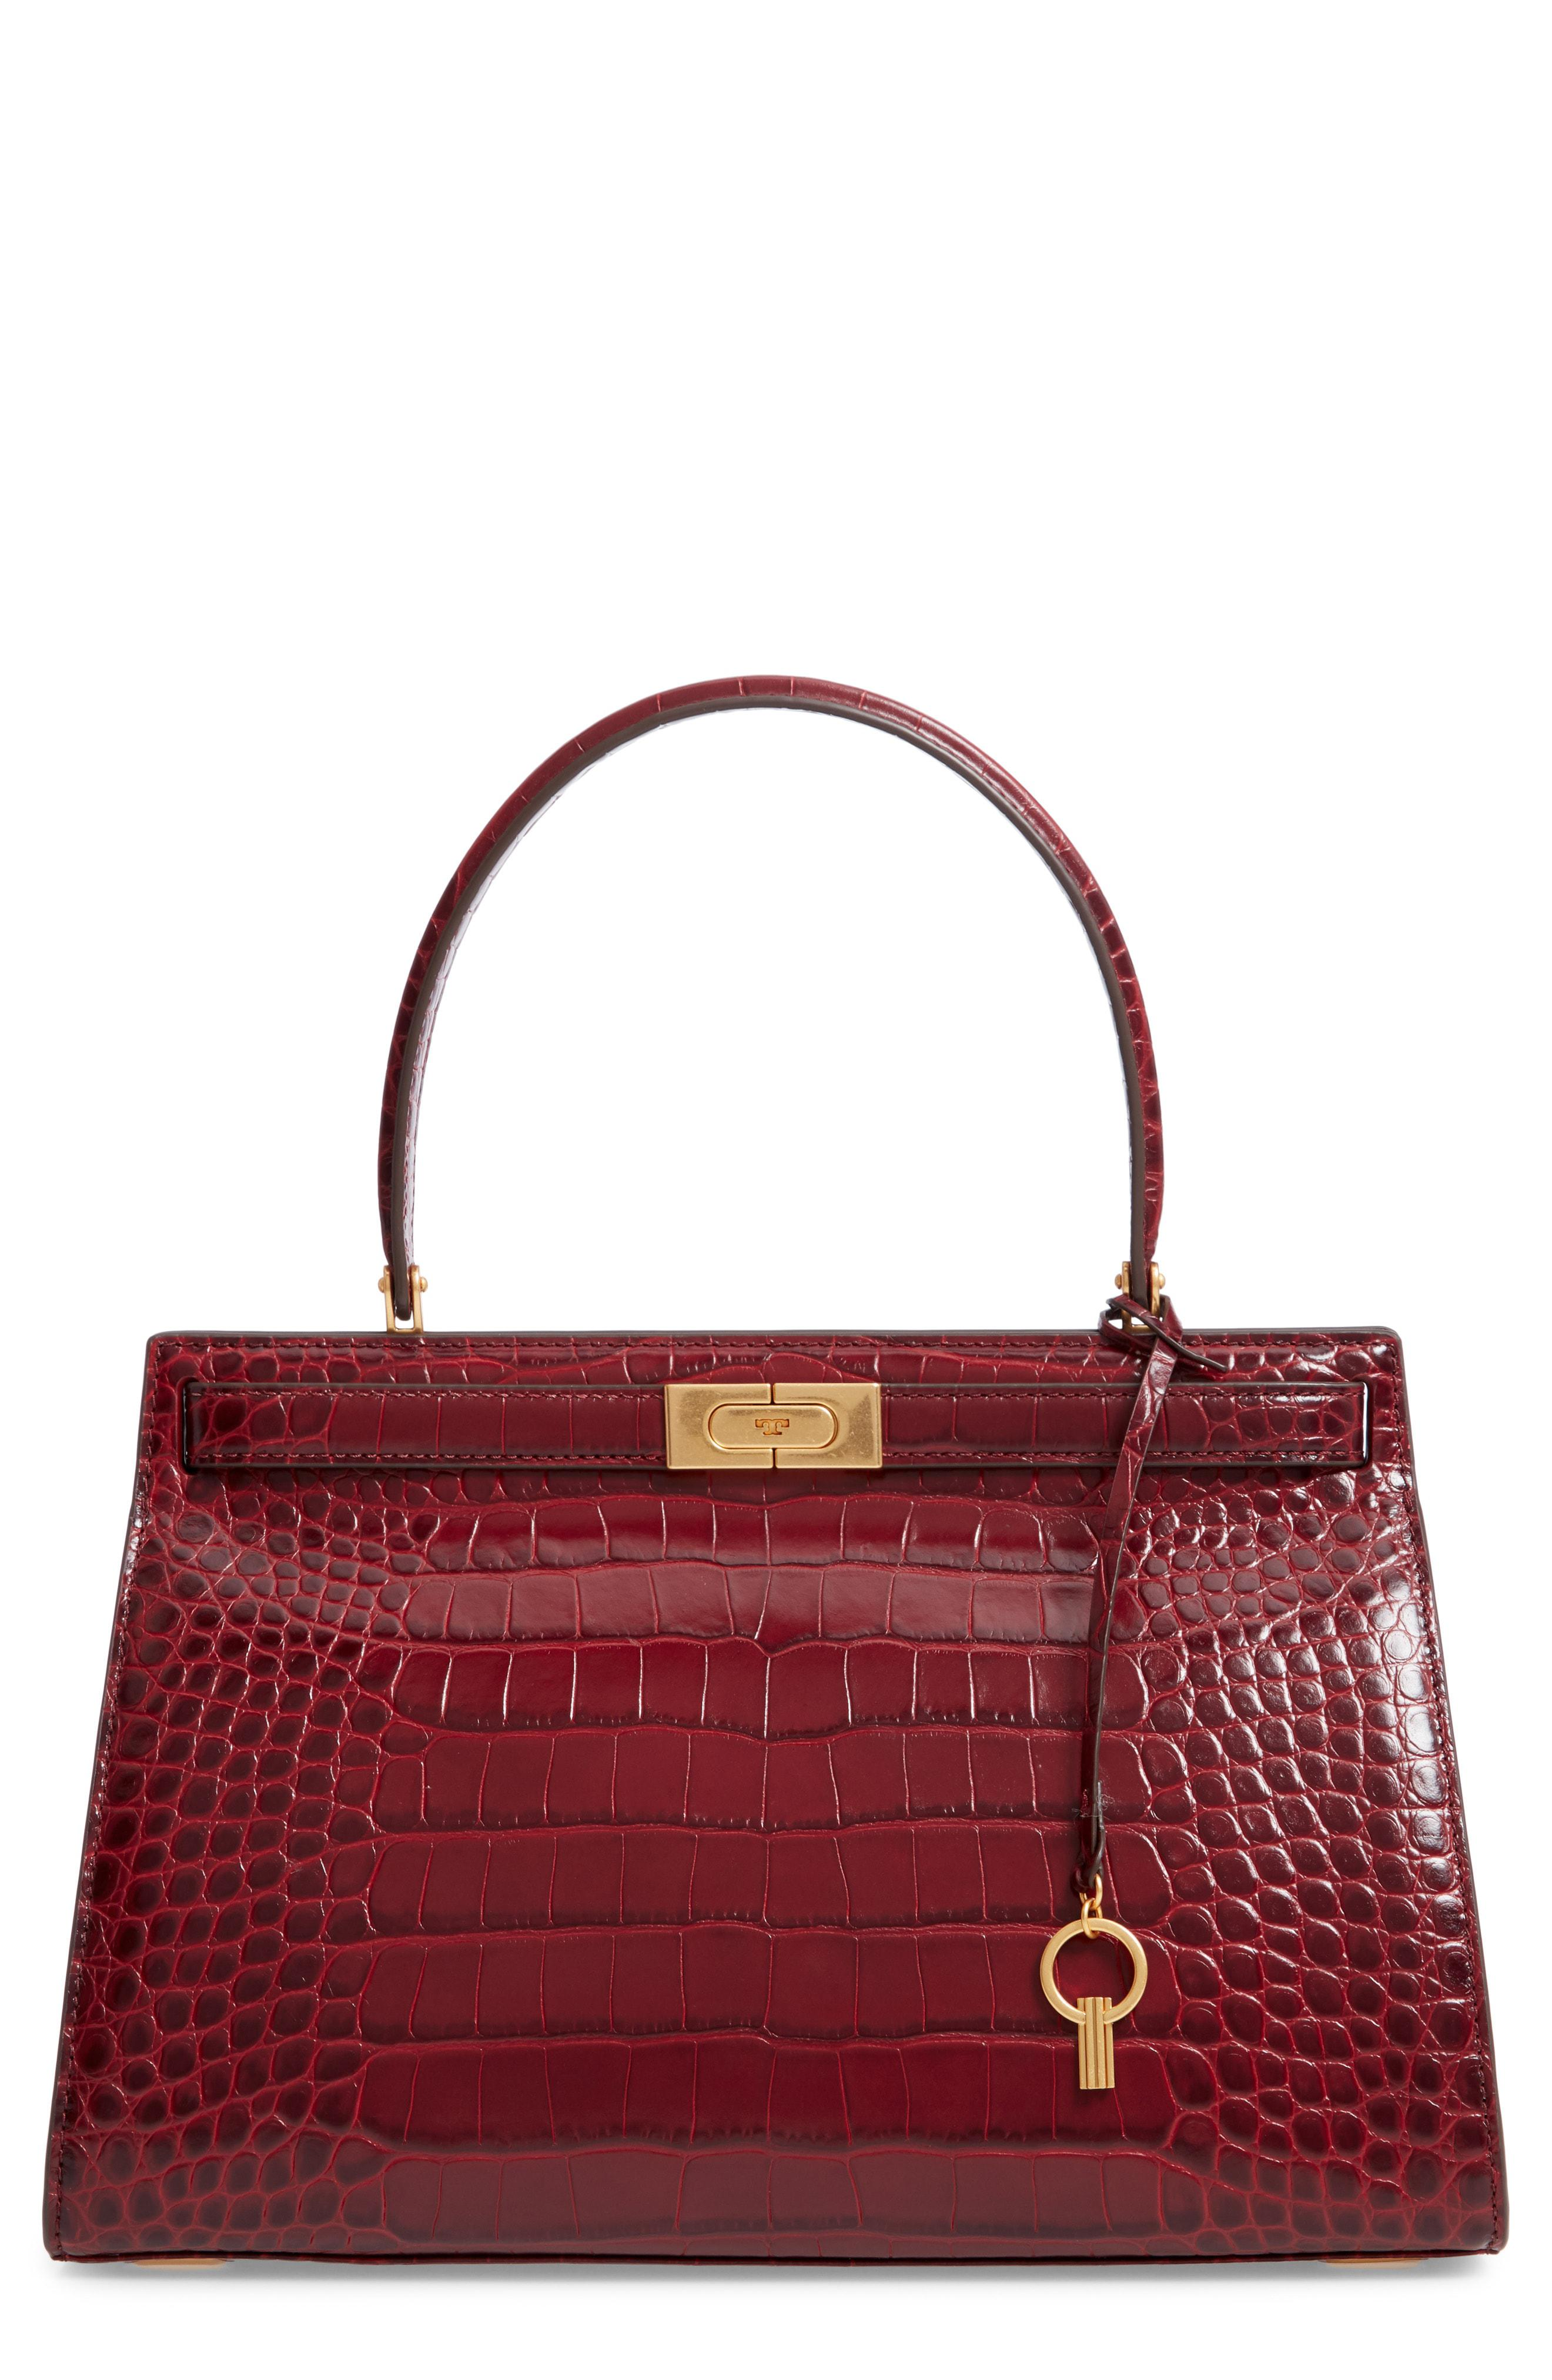 db24ad3ecec8 Lyst - Tory Burch Lee Radziwill Leather Satchel - in Red